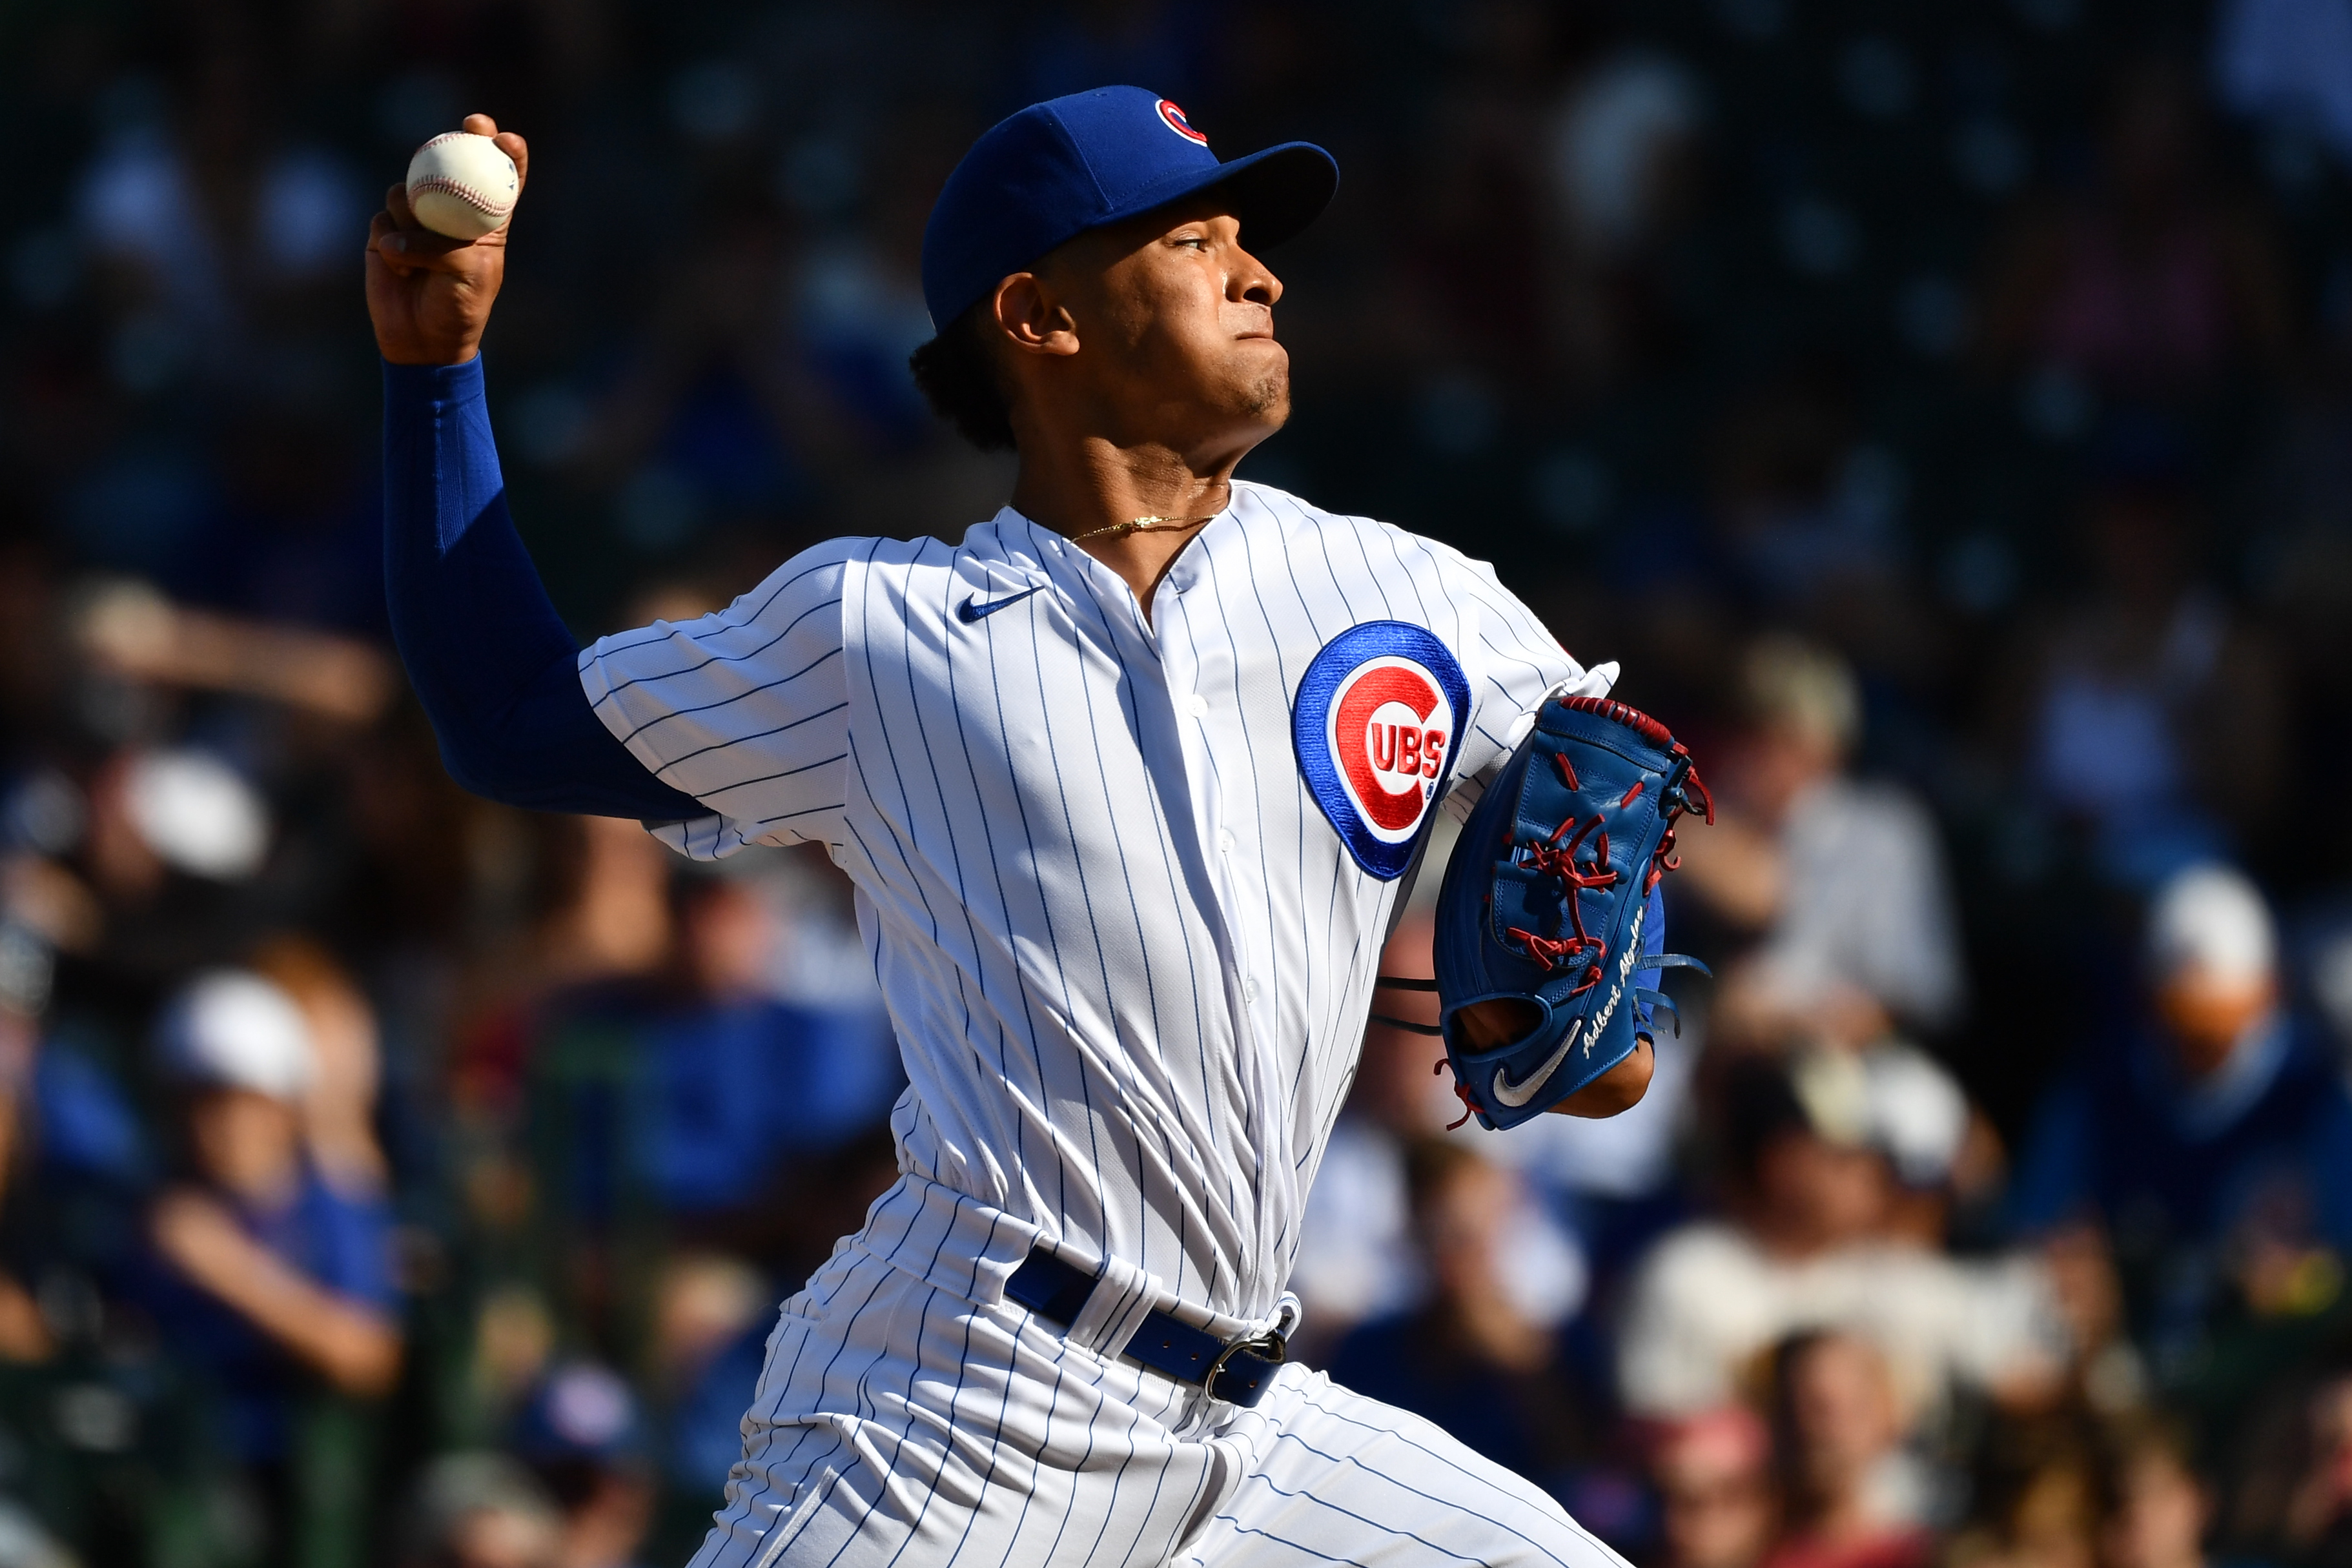 Cubs right-hander Adbert Alzolay had moments of brilliance, including going nine straight starts allowing three earned runs or less. But he finished with a 6.62 ERA over his last seven starts before the team moved him to the bullpen to manage his workload.